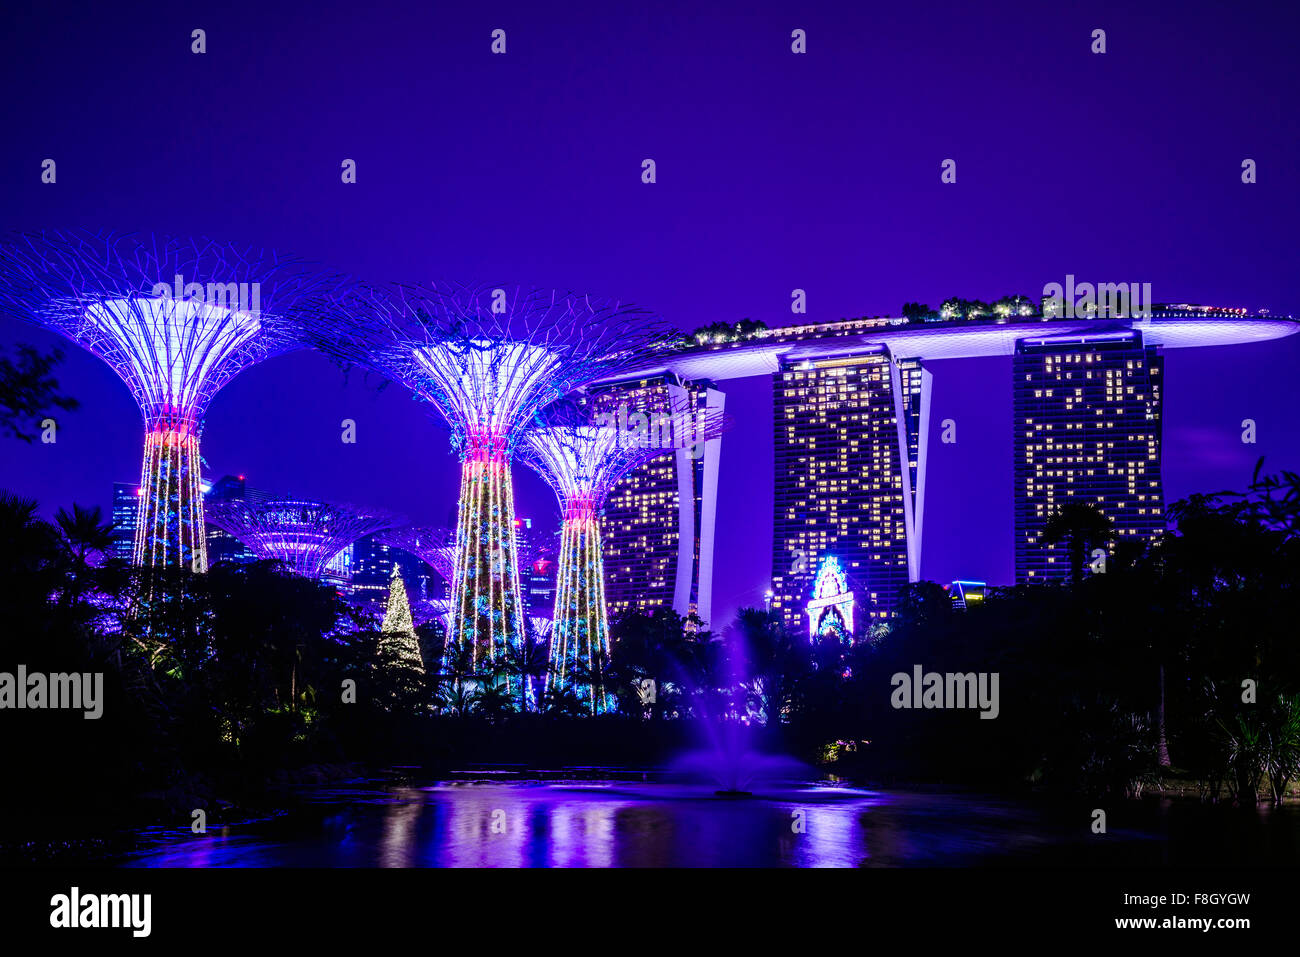 Singapore marina illuminated at night - Stock Image